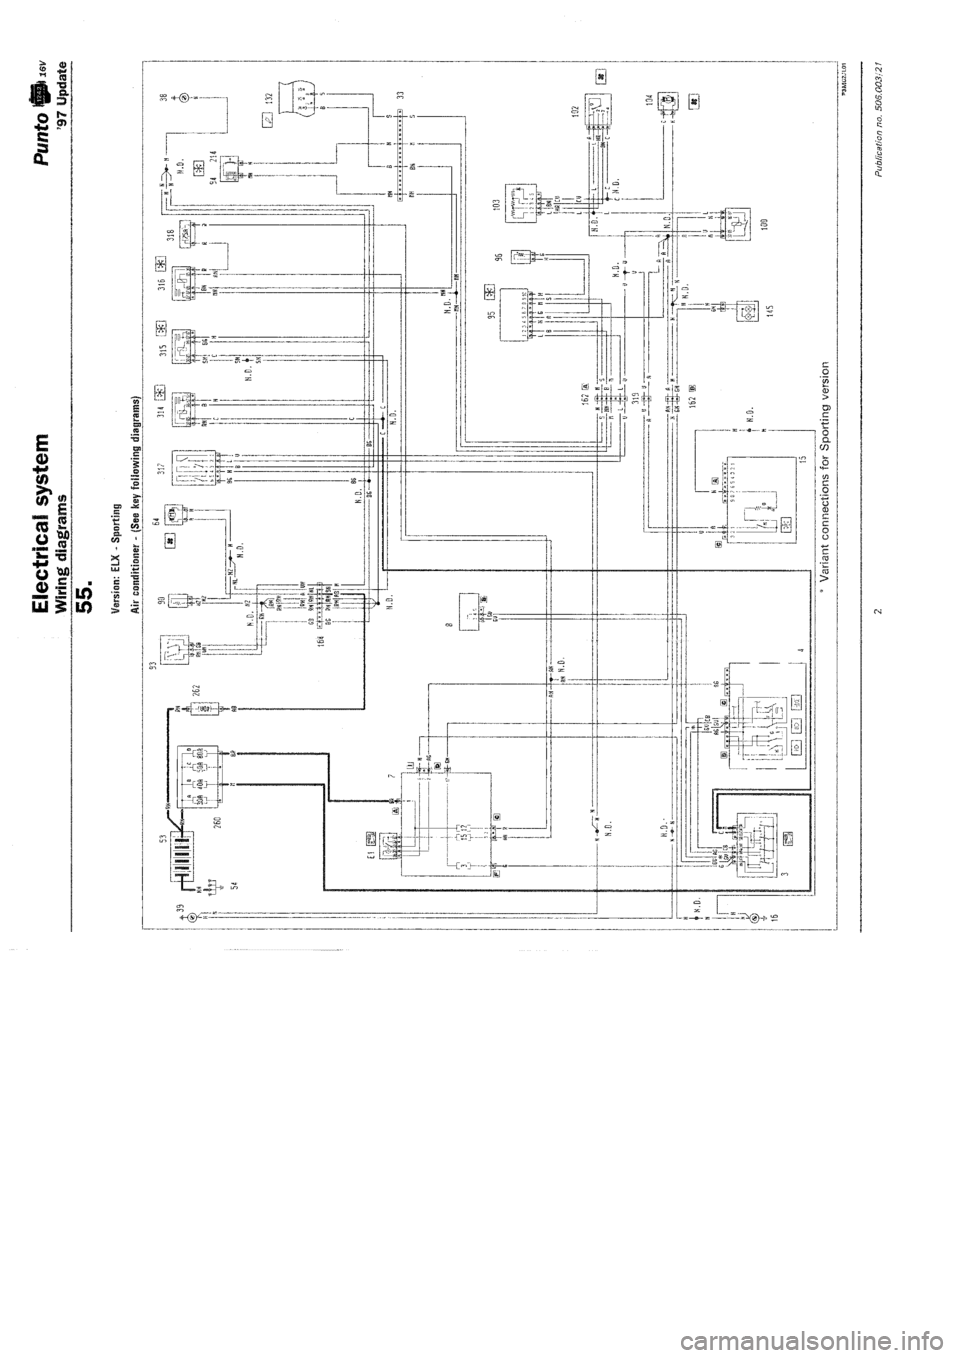 medium resolution of w960 4692 2 fiat punto 1997 176 1 g wiring diagrams workshop manual fiat